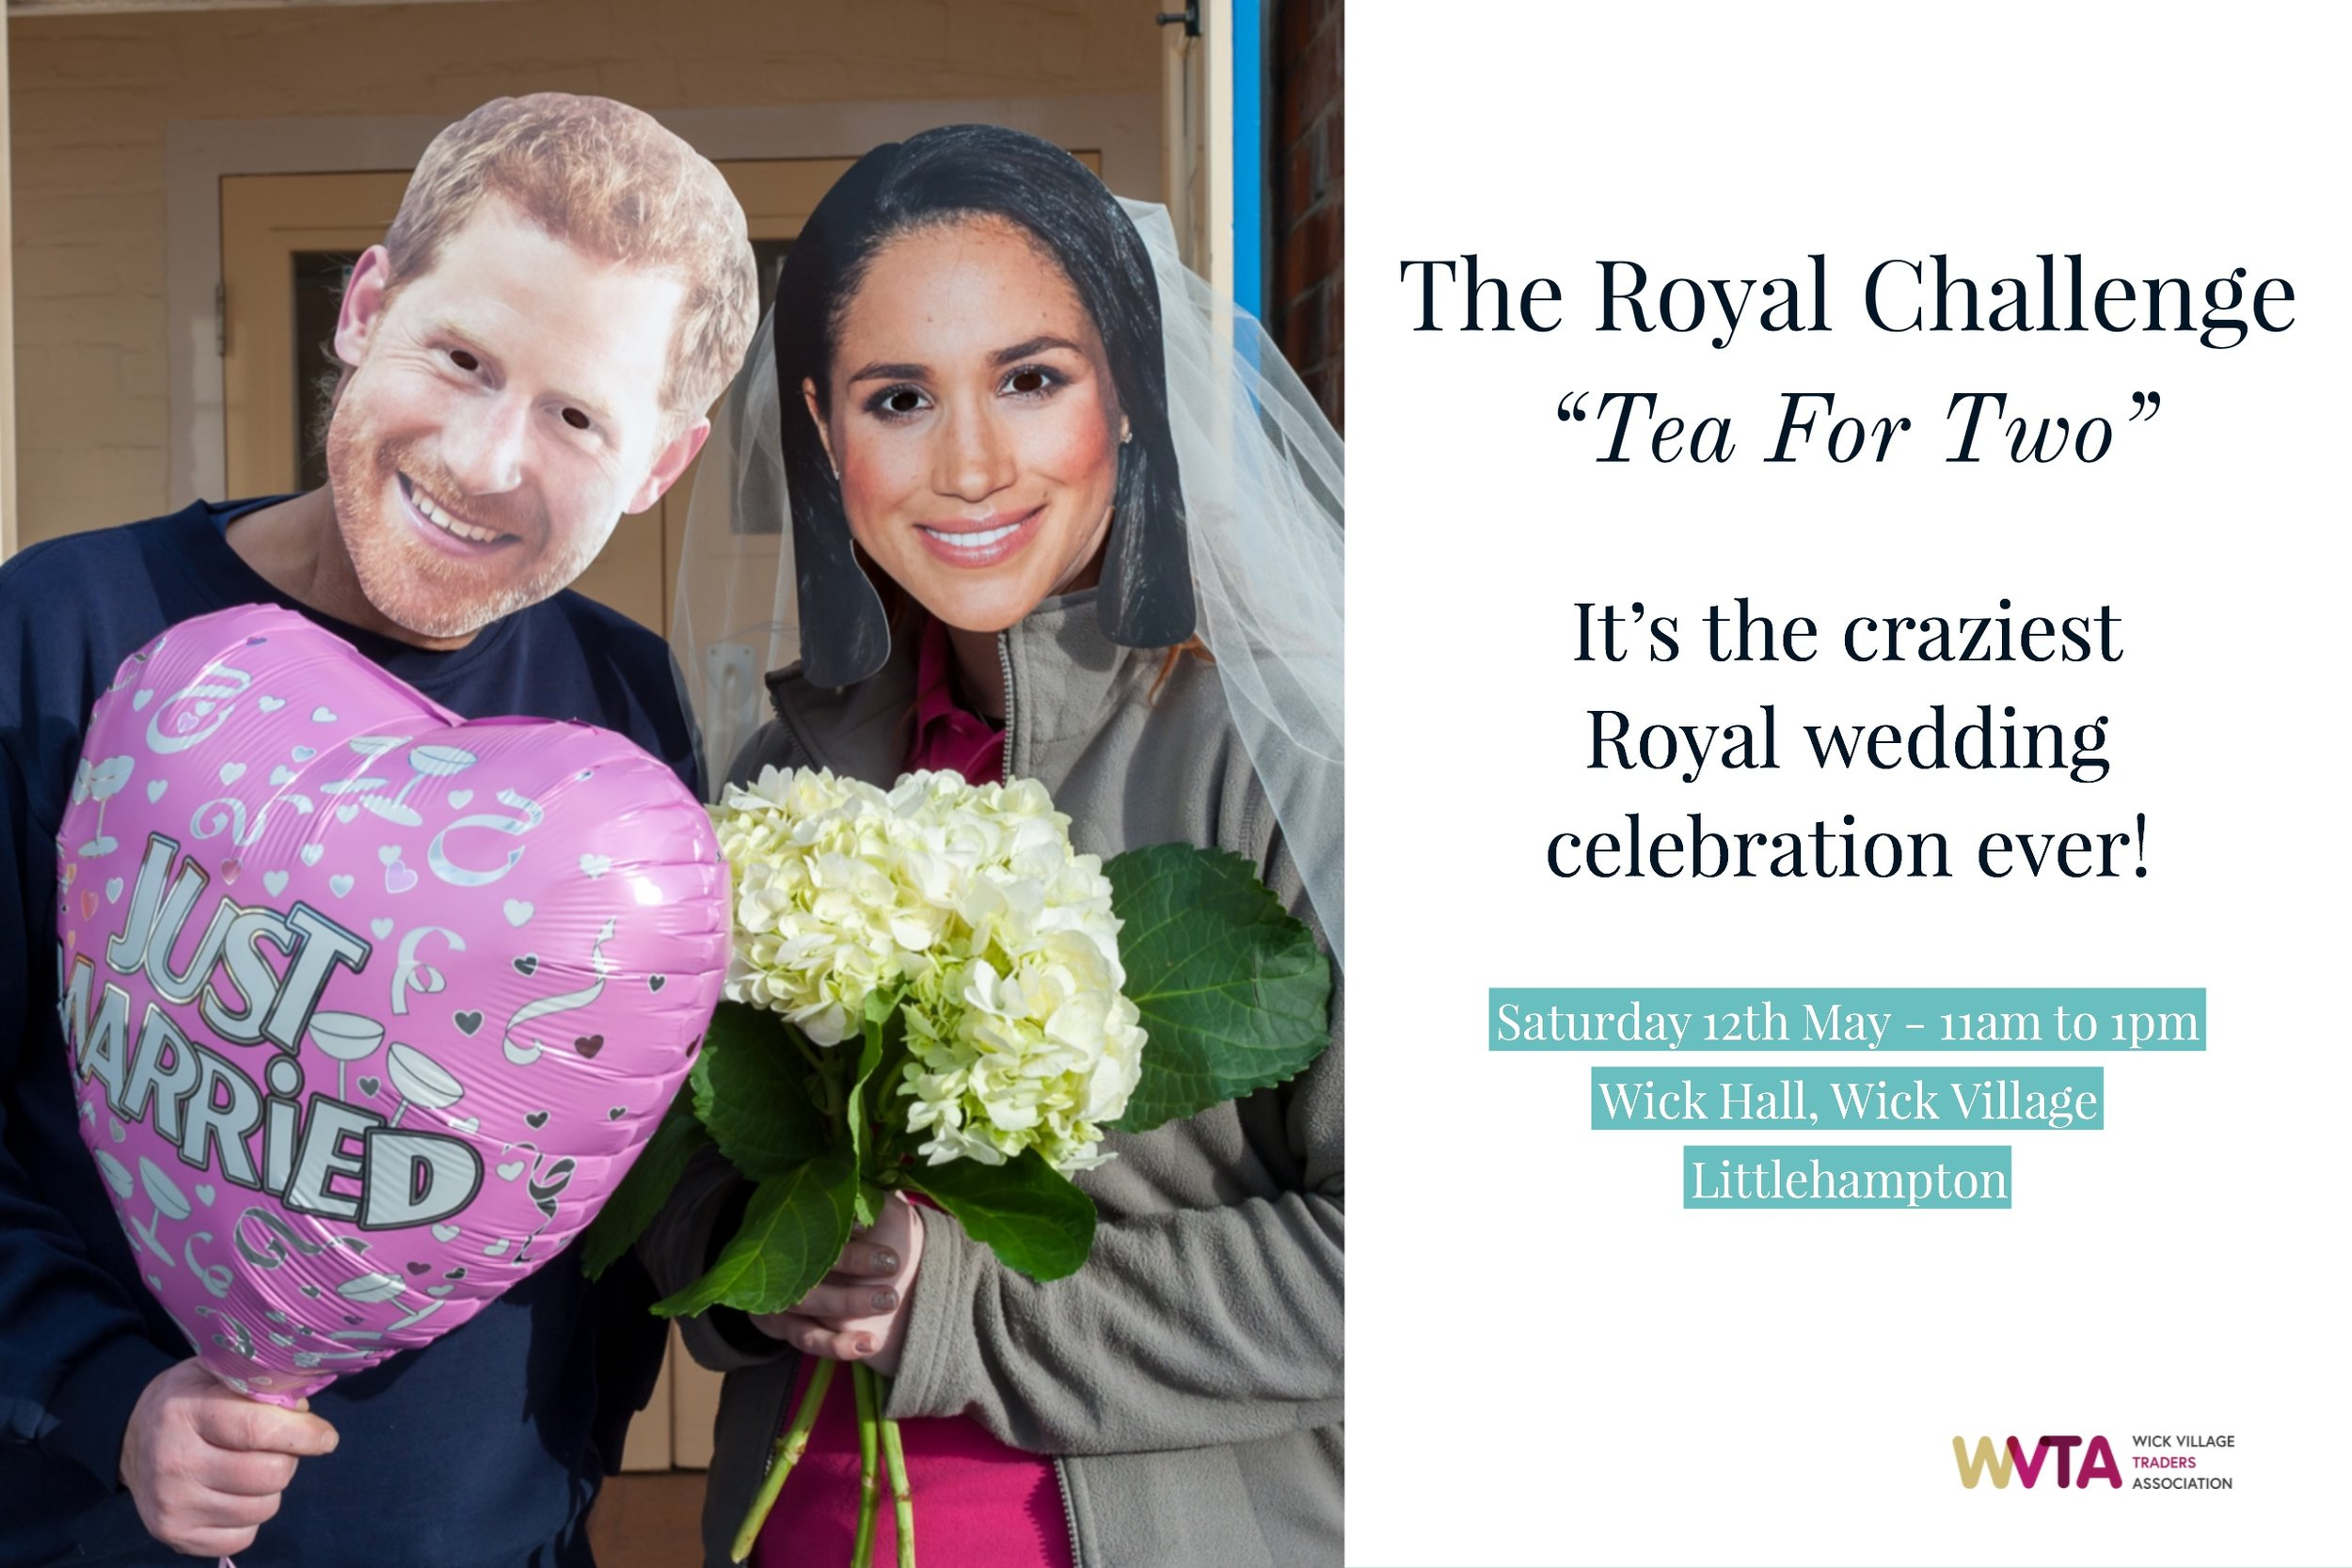 The Royal Wedding Tea For Two challenge to celebrate the wedding of Prince Harry and Meghan Markle - 12th May at Wick Hall, Wick Village, Littlehampton, West Sussex.